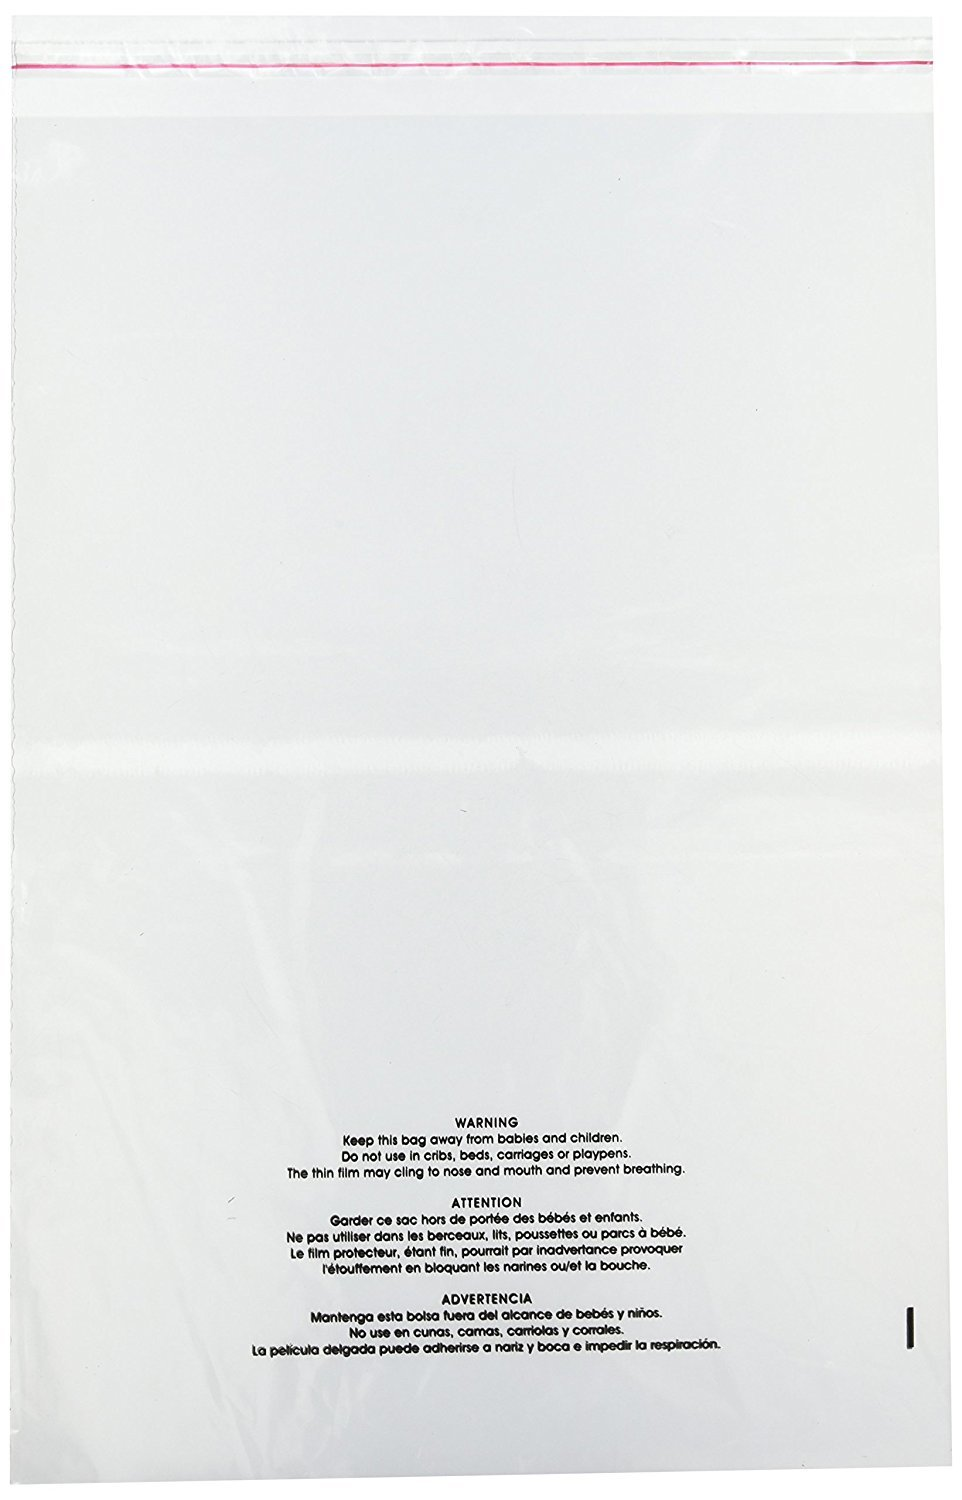 Uline 14'' x 20'' Self Seal Poly Bags with Suffocation Warning, Easy Peel and Stick Clear, 1.5 mil (S-19132) 100 count (3 X 100 COUNT)